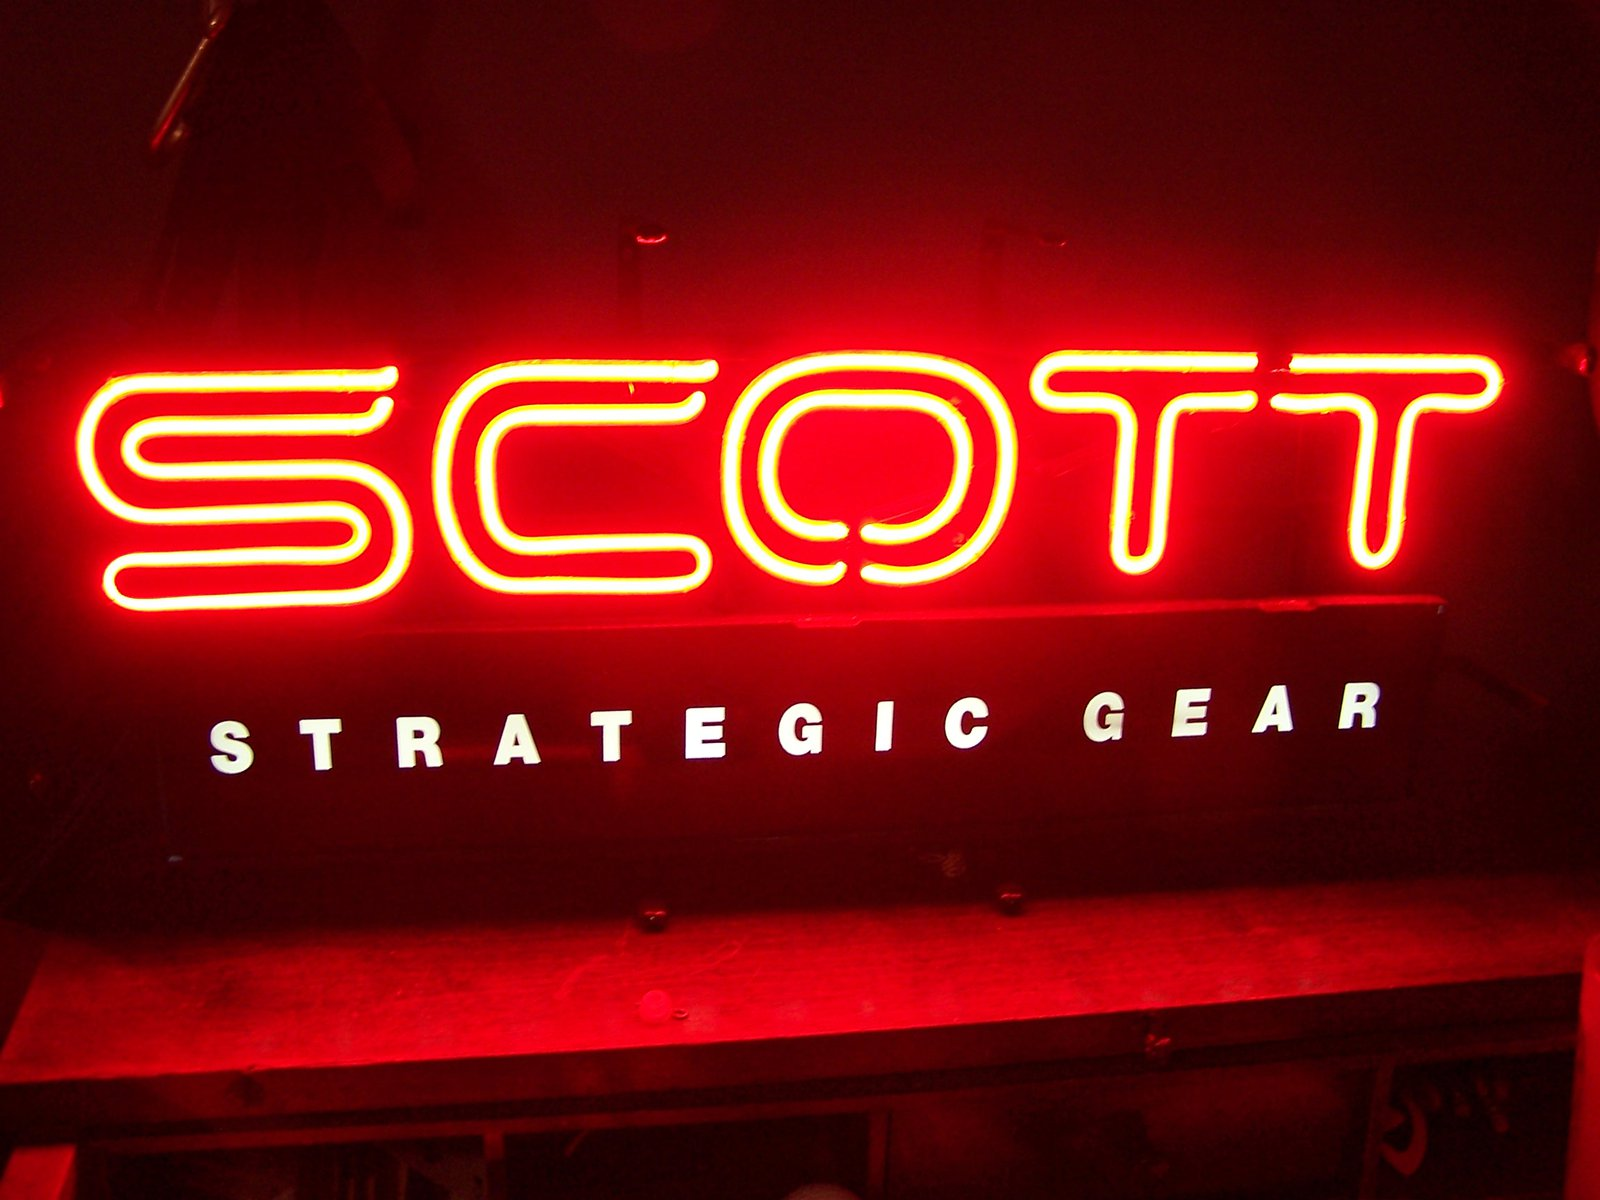 scott sign for sale